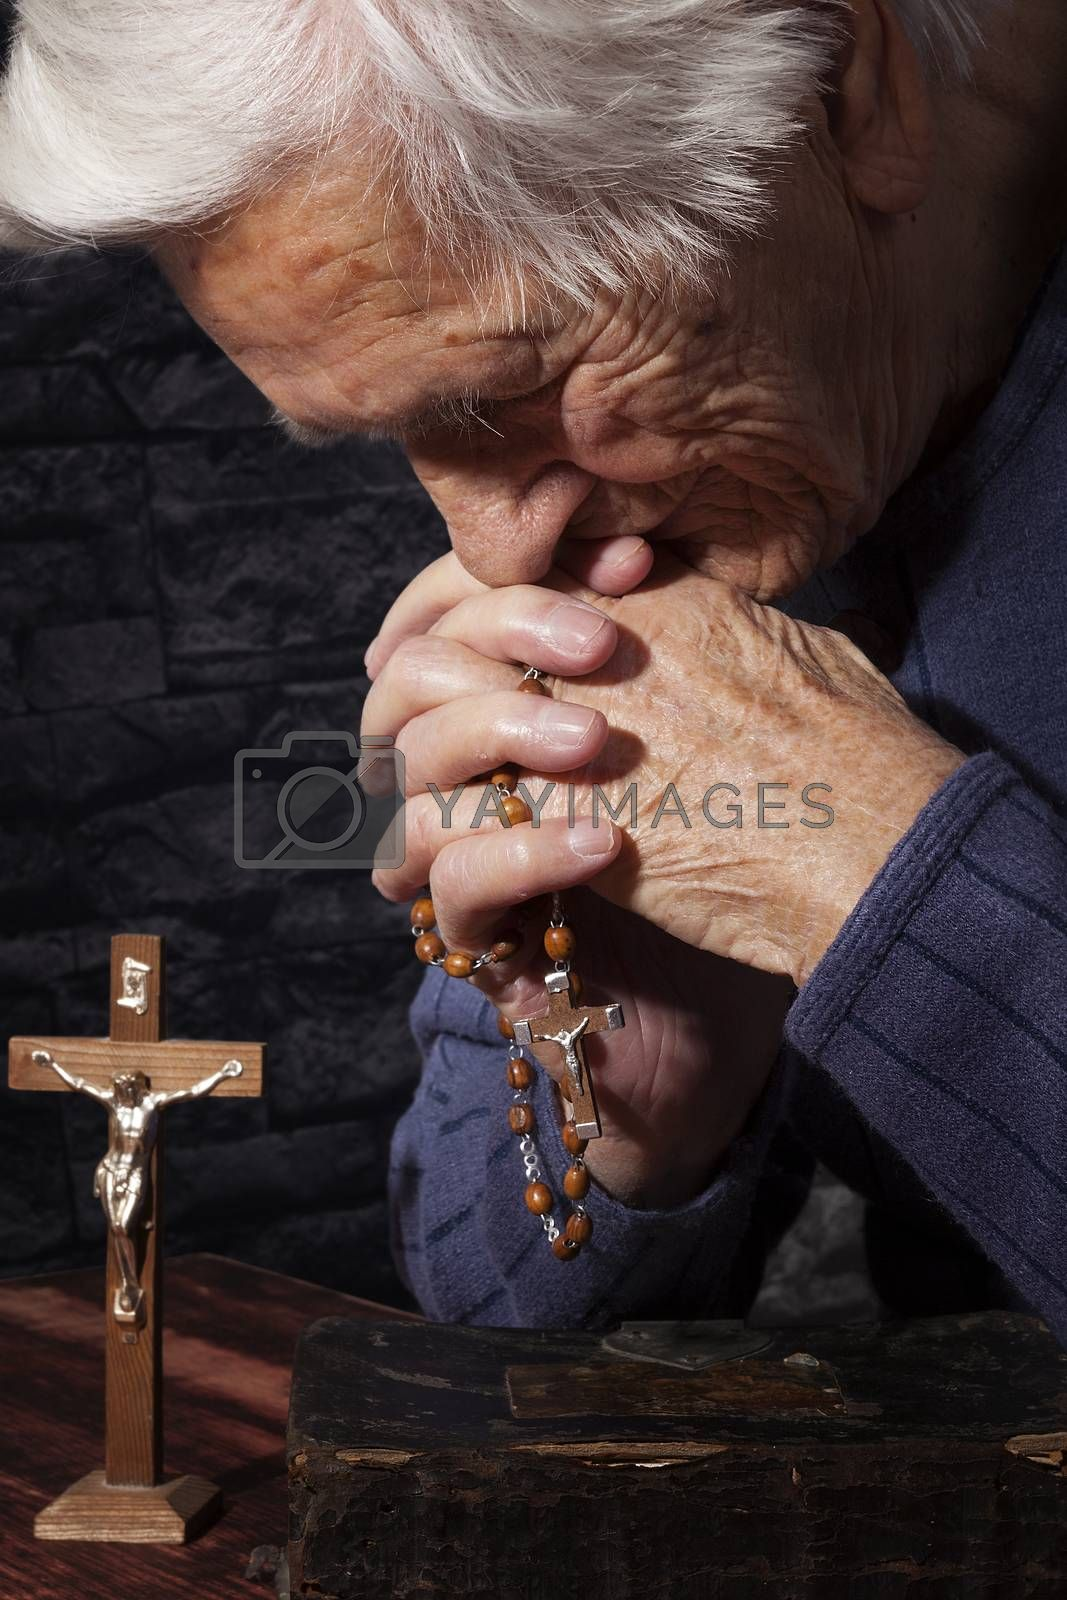 Grandmother praying. Old wrinkled beautiful woman praying with rosary. Faith, spiritualy and religion.